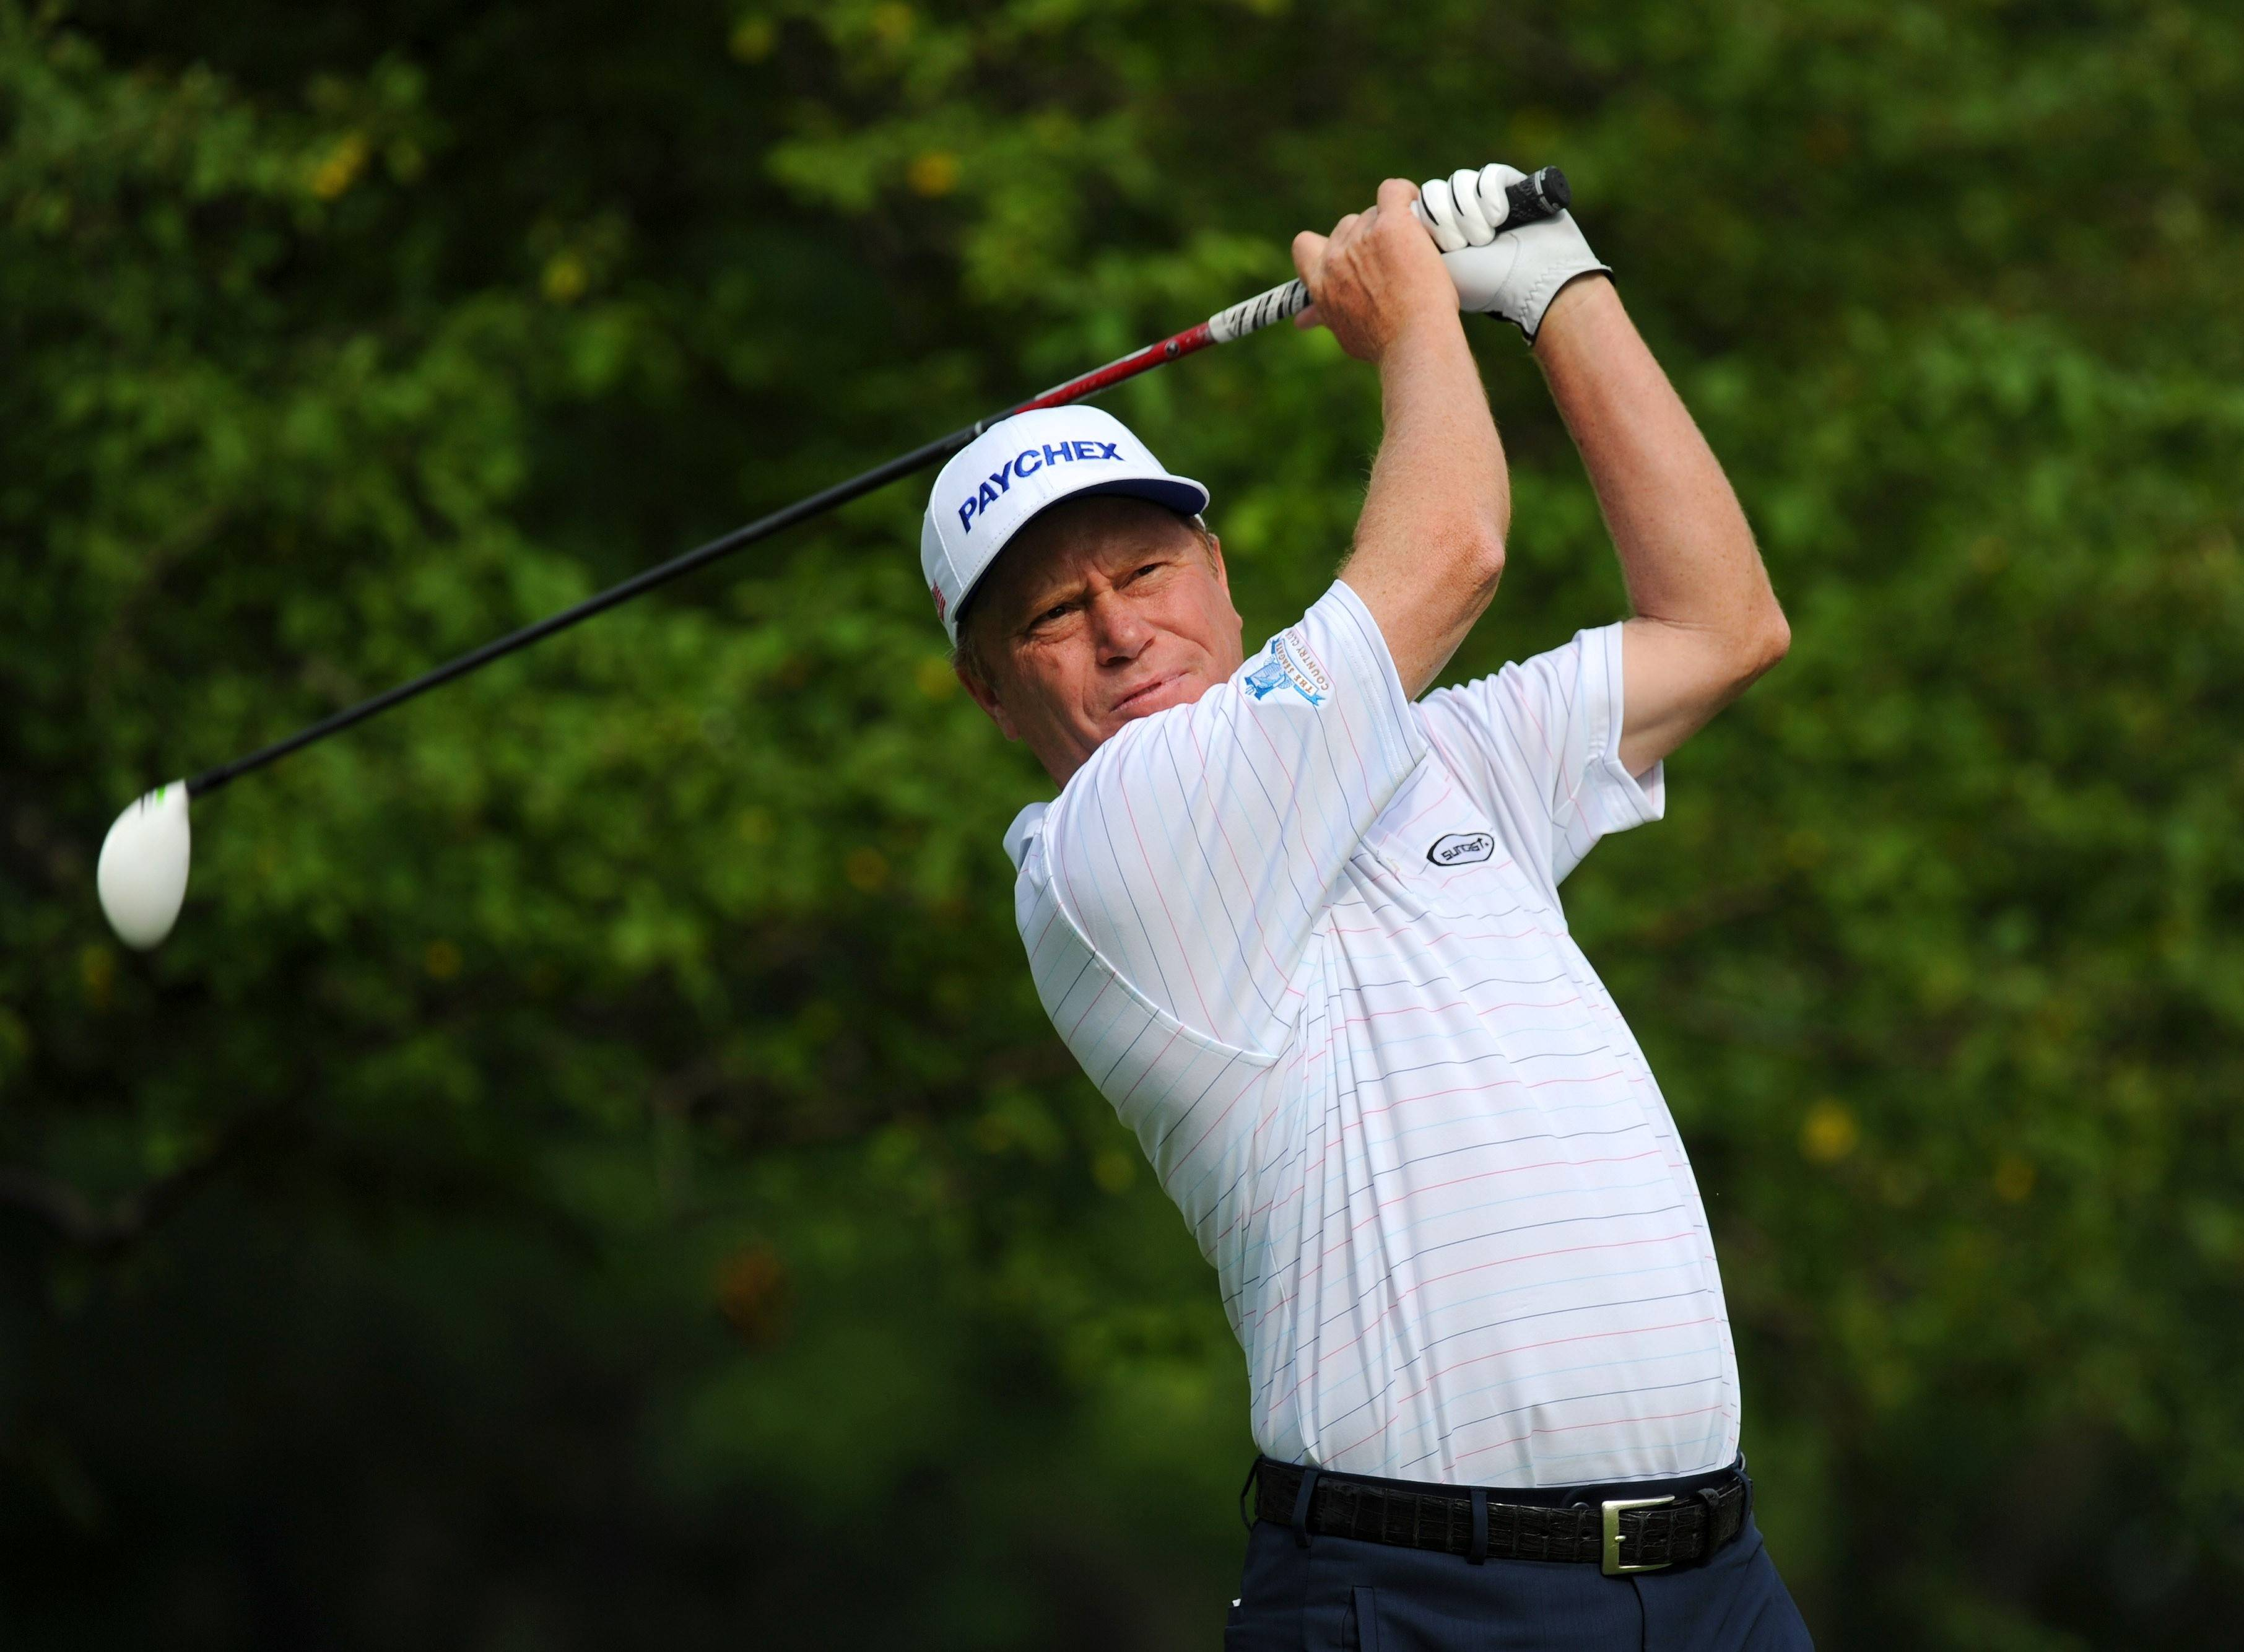 The 1988 PGA Championship winner, Jeff Sluman of Hinsdale, will headline the 31st Chicago Golf Show this weekend at the Donald E. Stephens Convention Center in Rosemont.